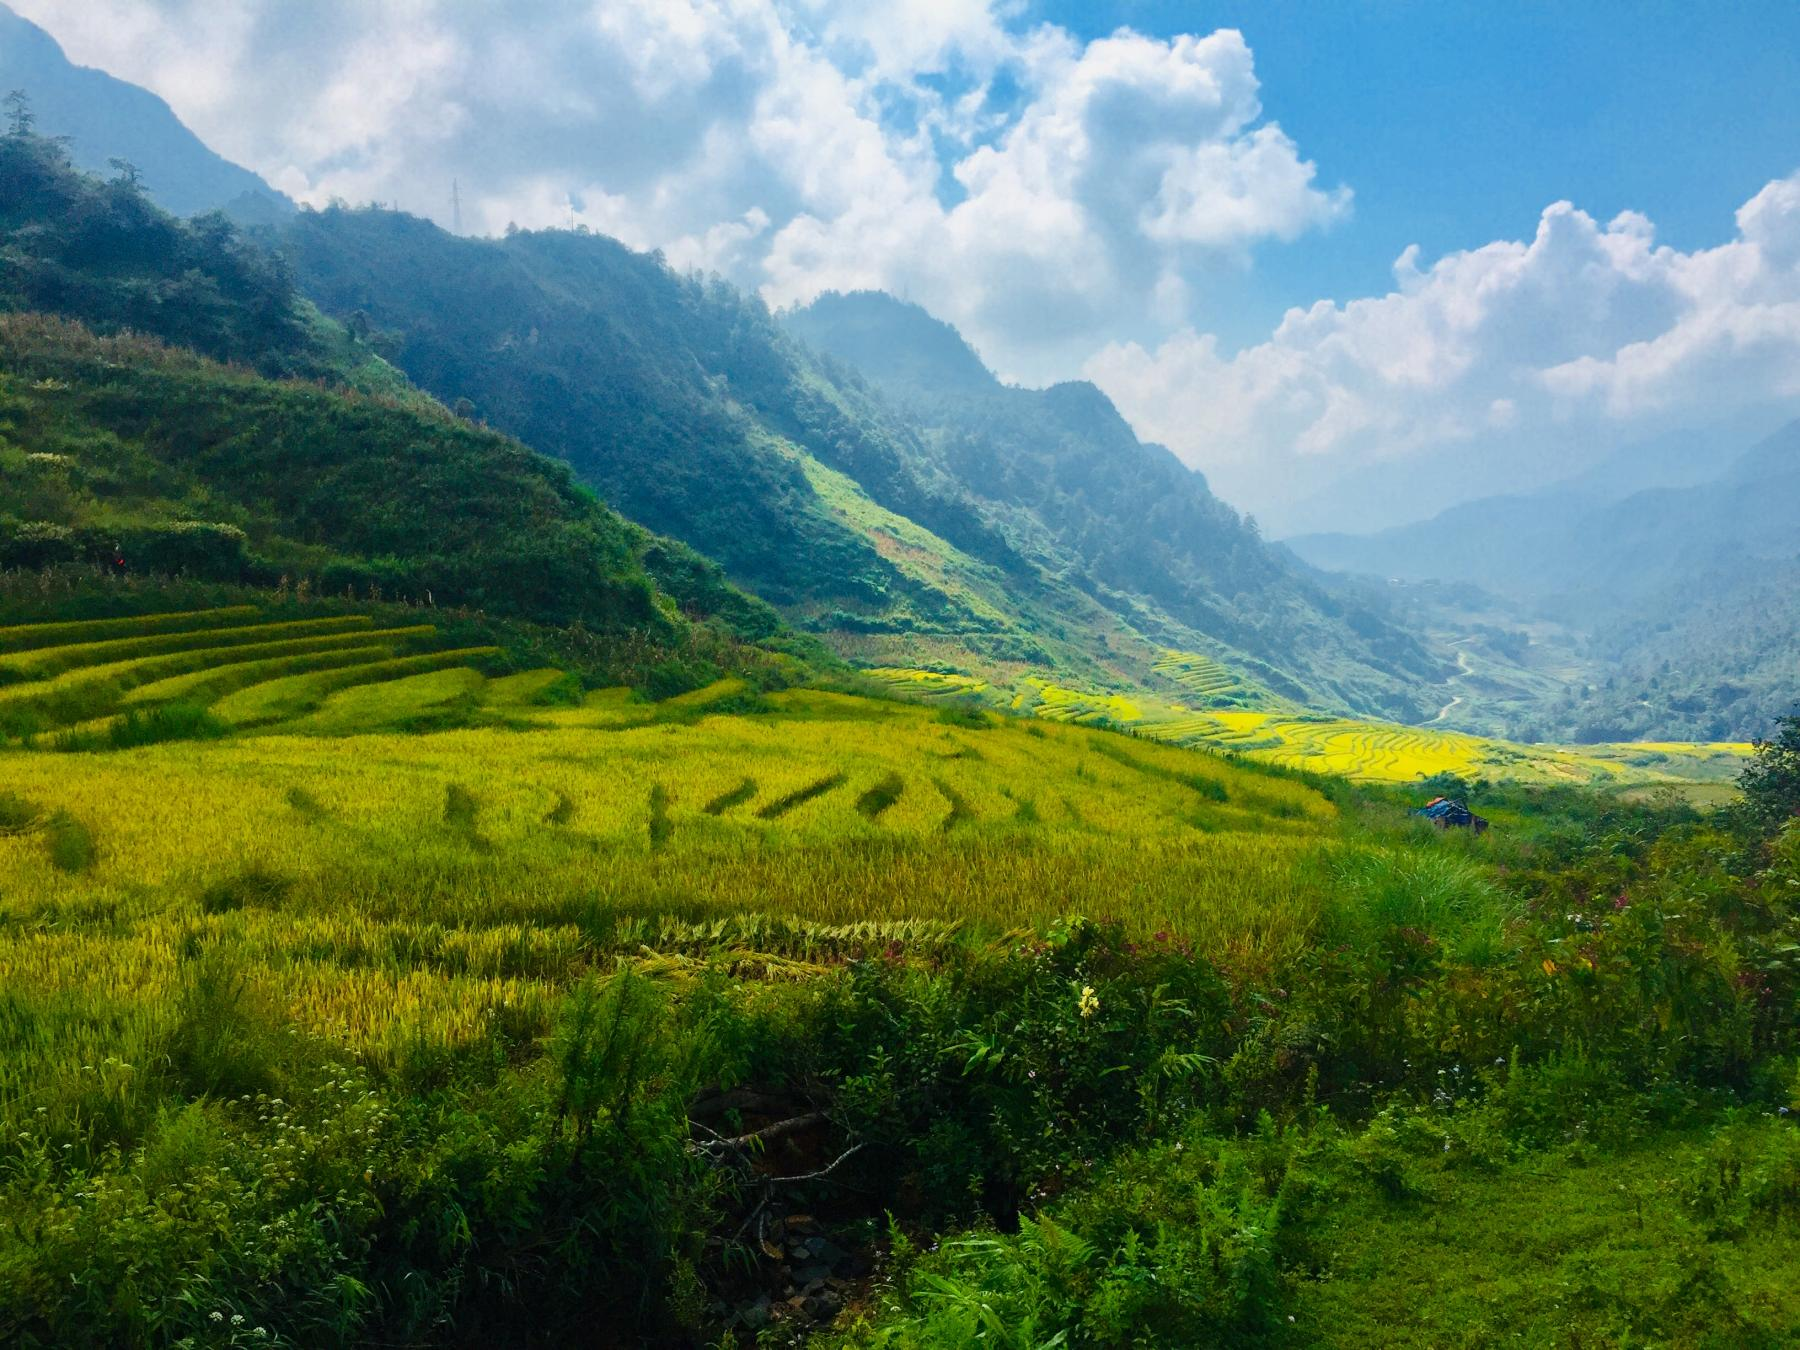 Vietnam - Let's See The Sapa Mountains, The Golden Rice Harvest and Ha Long Bay starting at Sa Pa, Lao Cai, Vietnam